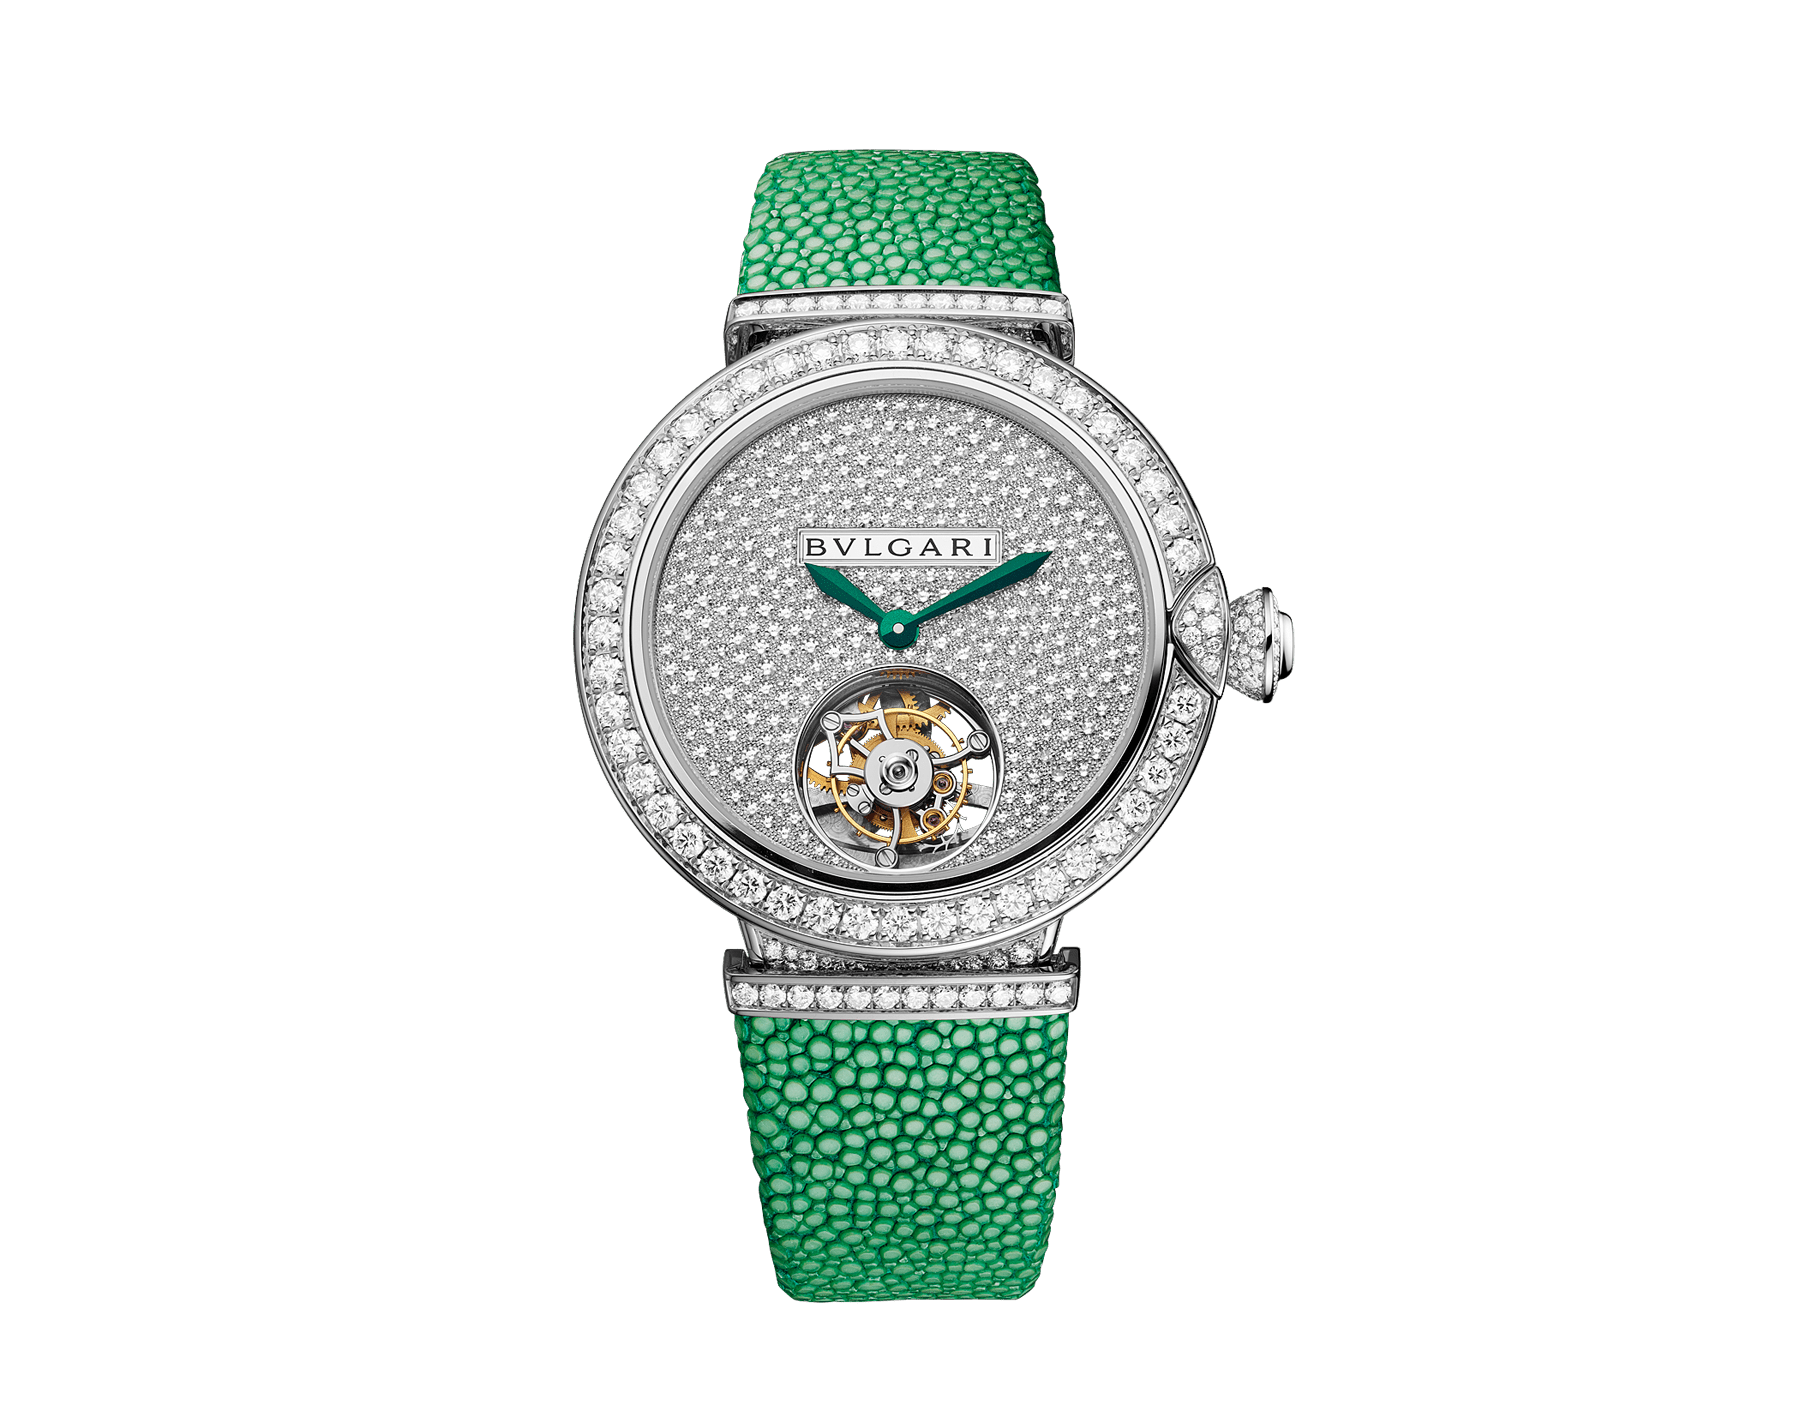 Montre LVCEA Tourbillon en édition limitée avec mouvement mécanique de manufacture, remontage automatique, tourbillon transparent, boîtier en or blanc 18 K serti de diamants ronds taille brillant, cadran pavé diamants avec diamants ronds taille brillant et finition verte, bracelet en galuchat vert 103039 image 1